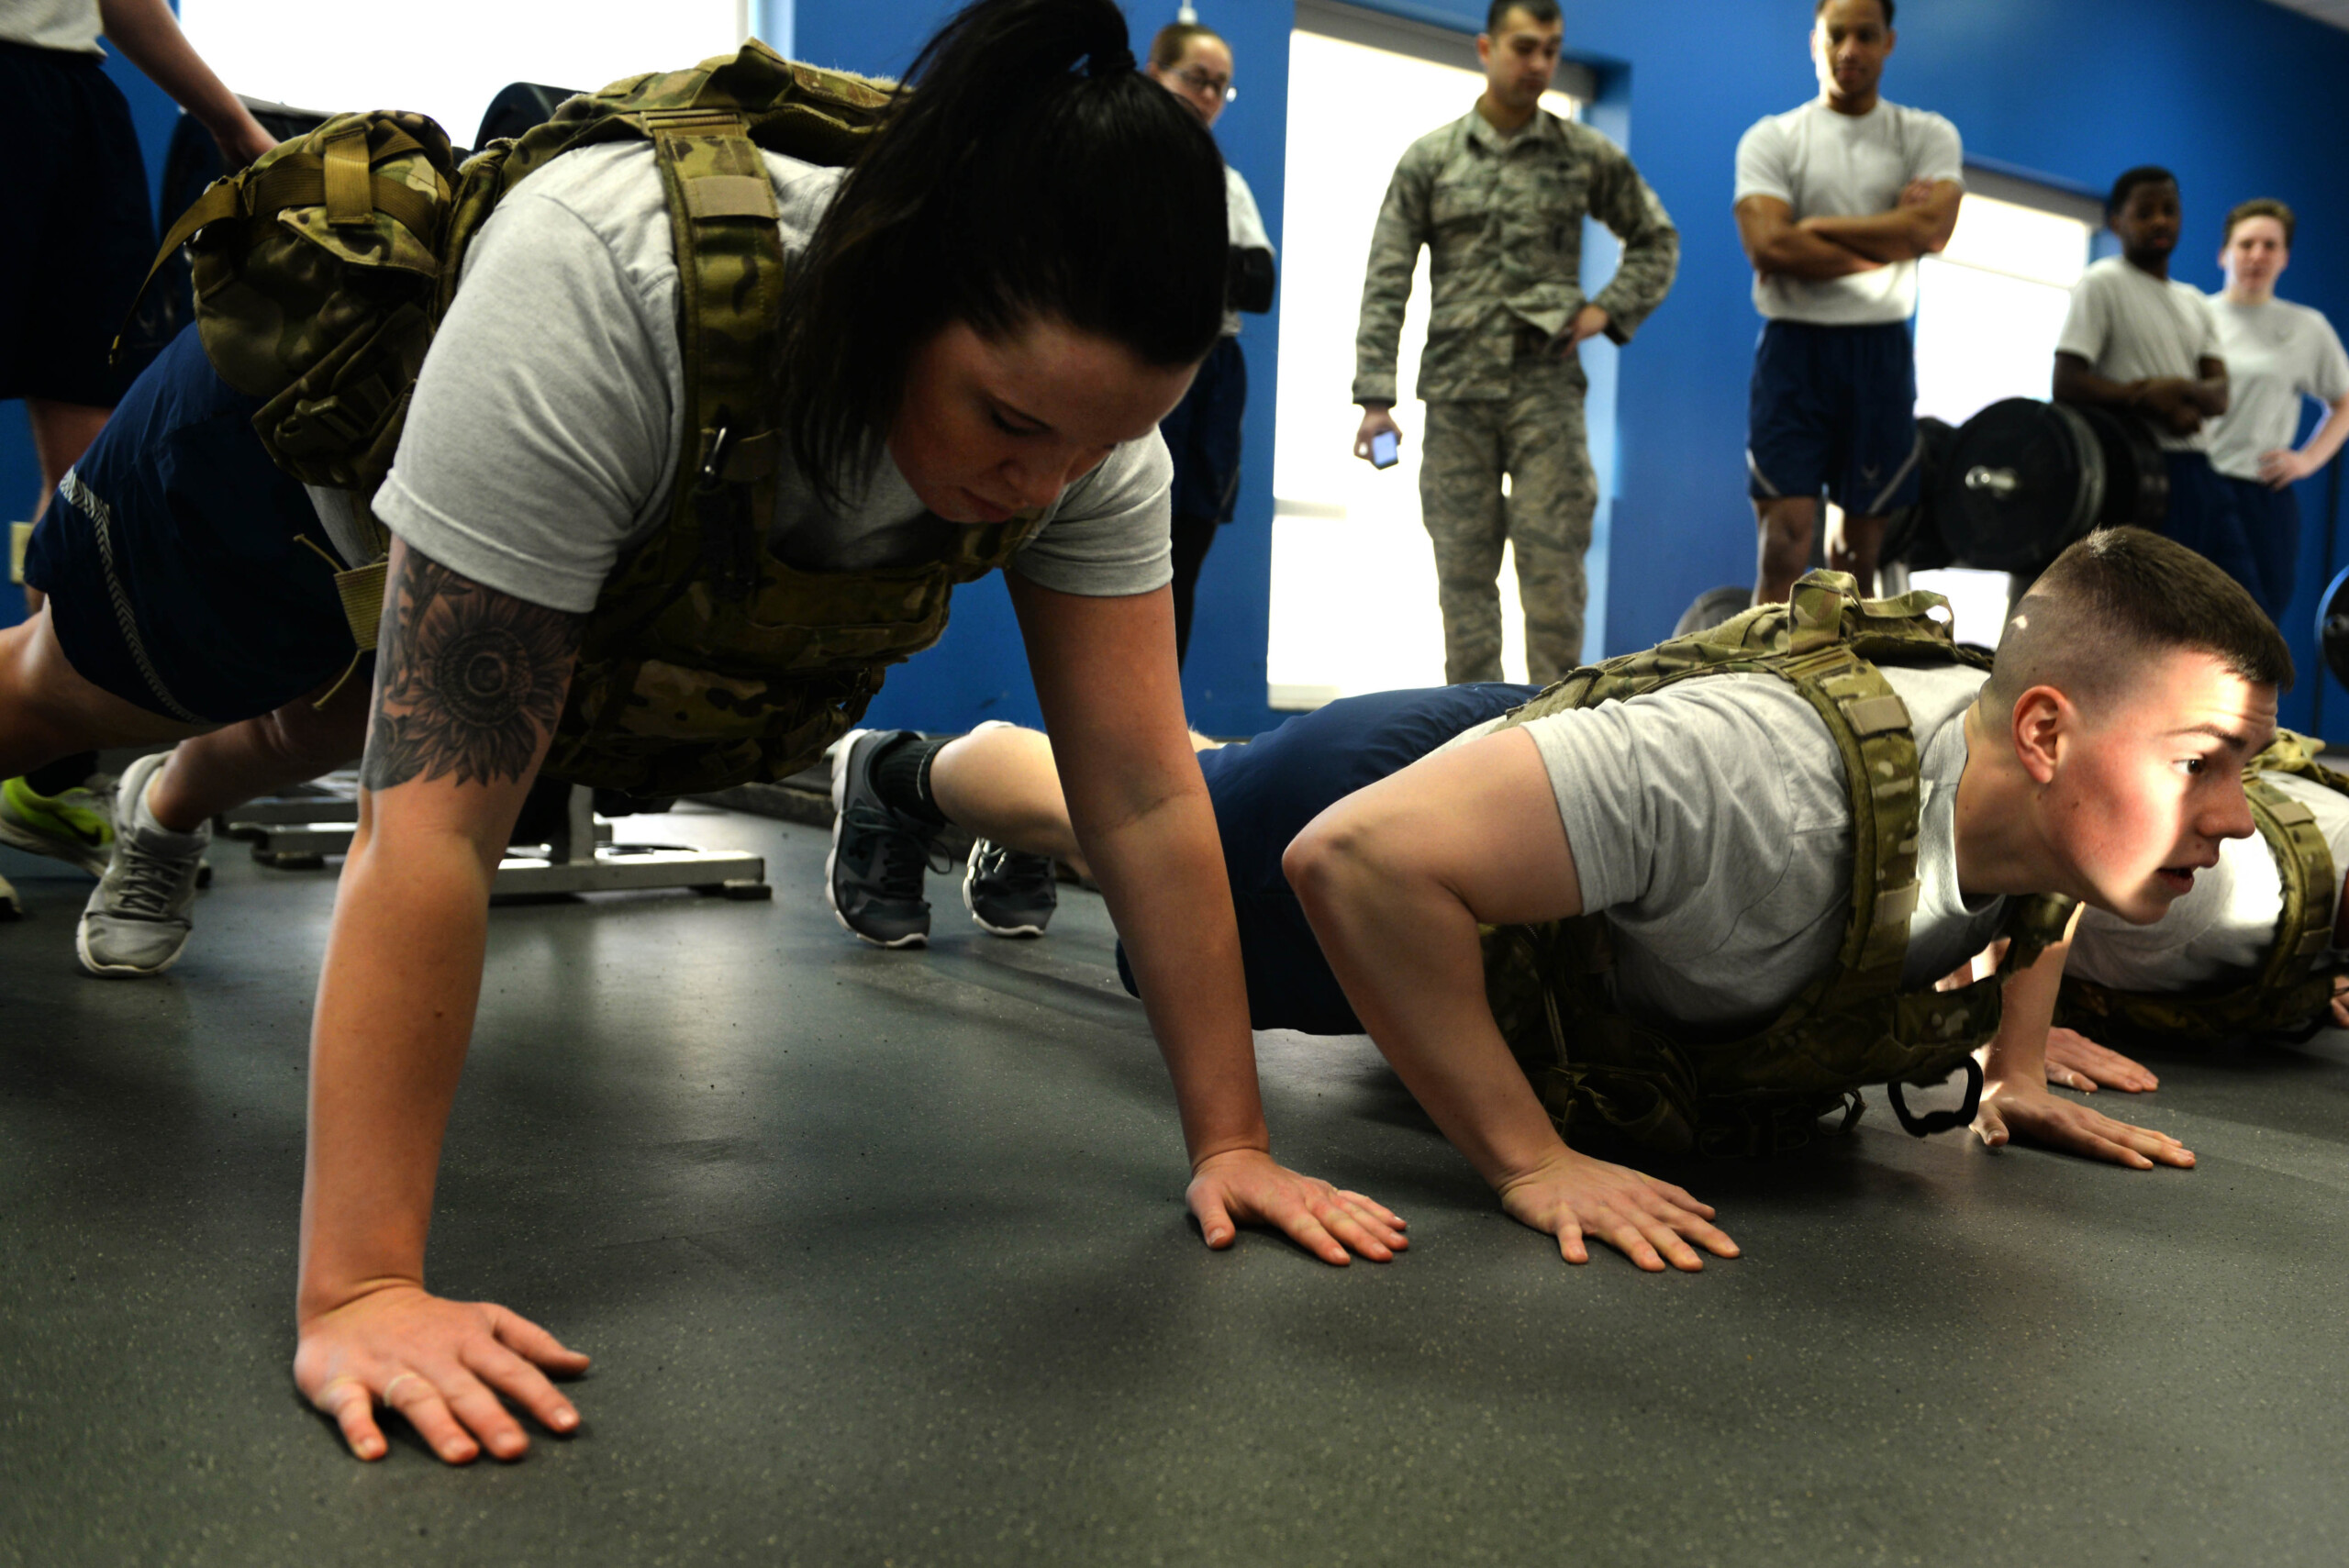 Bench Press vs. Weighted Vest Pushups